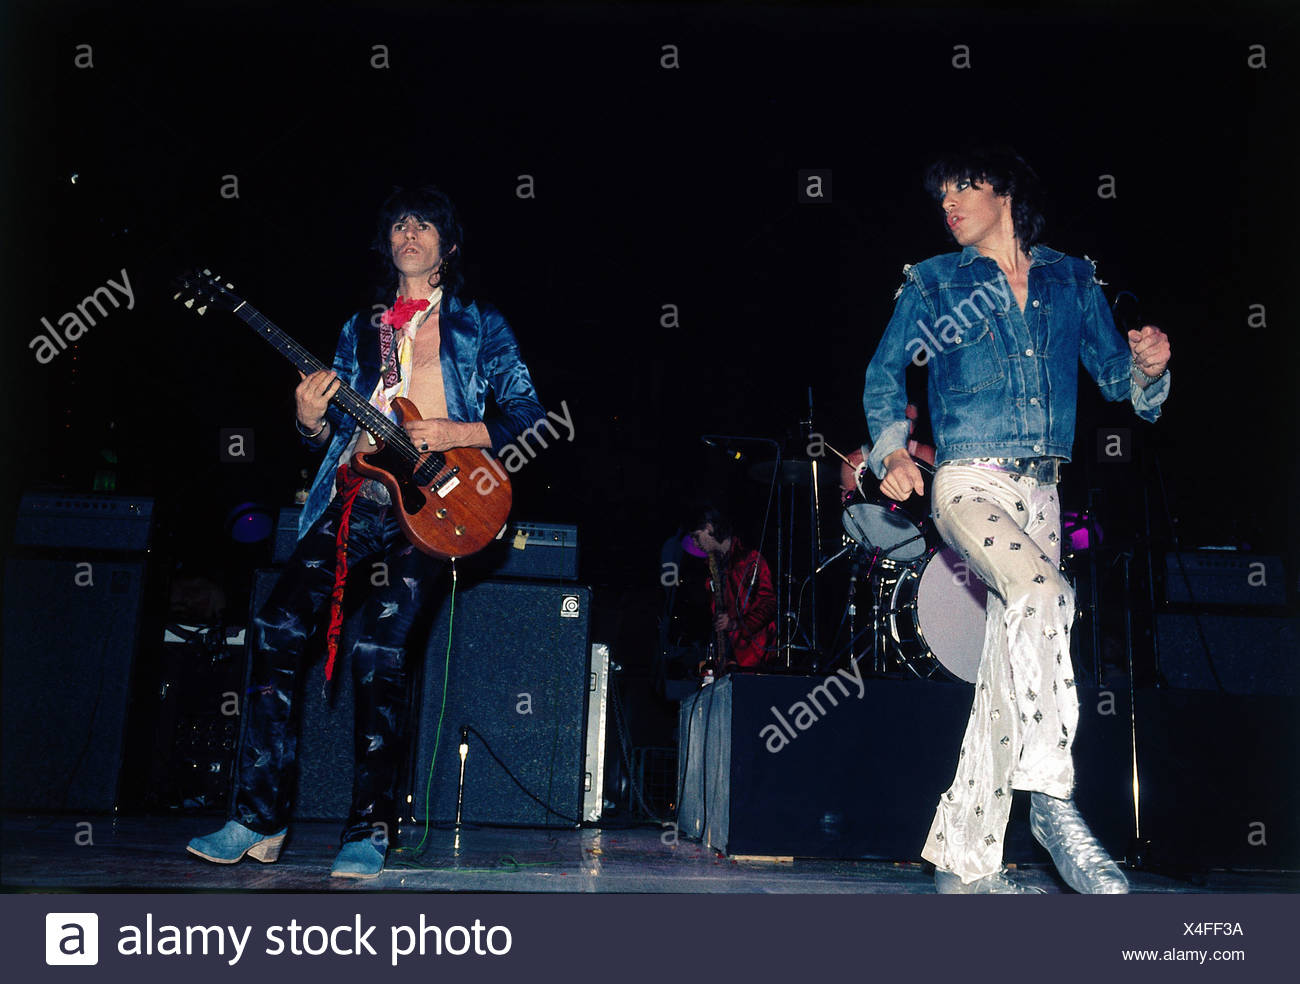 Rolling Stones, British rock group, Mick Jagger and Keith Richards during a concert, 1970s, jeans jacket, musicians, dancing, pl - Stock Image